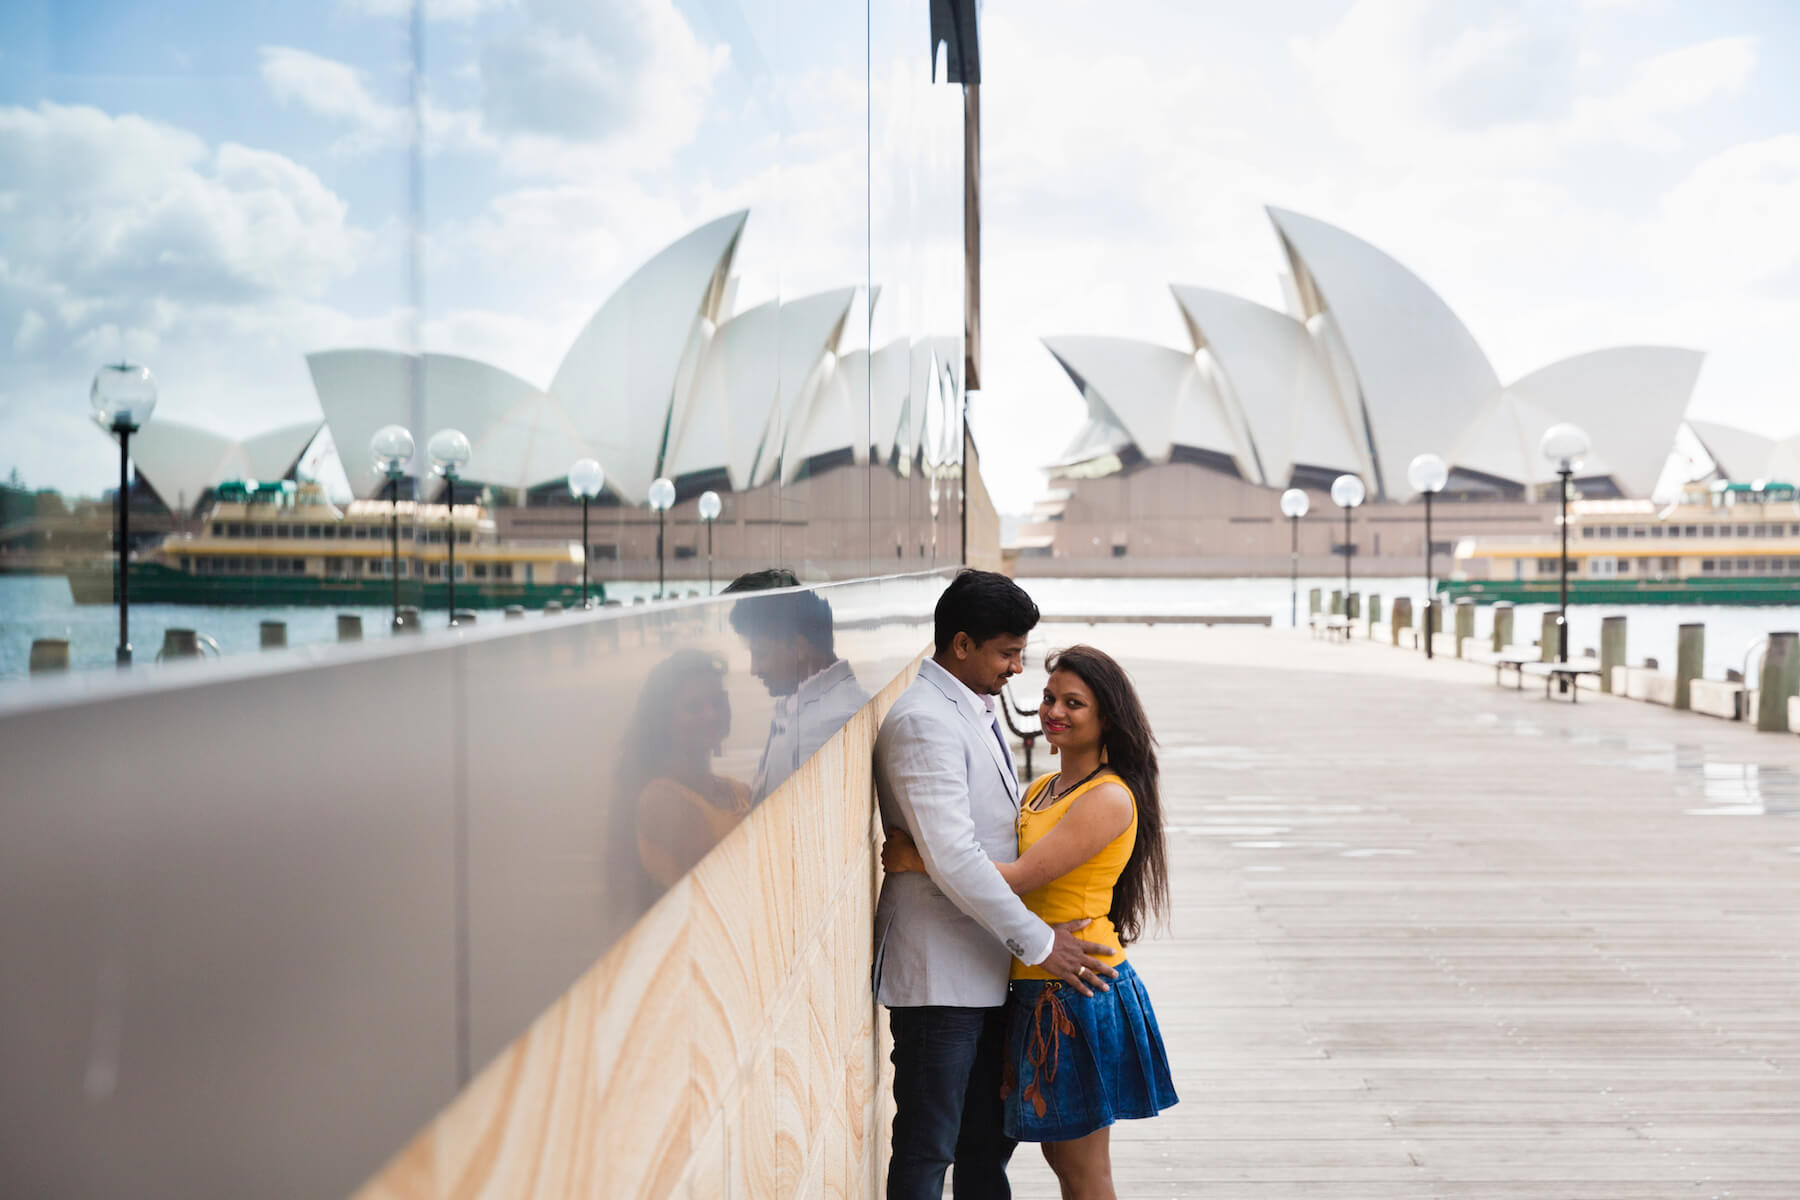 two people hugging each other in Sydney, Australia